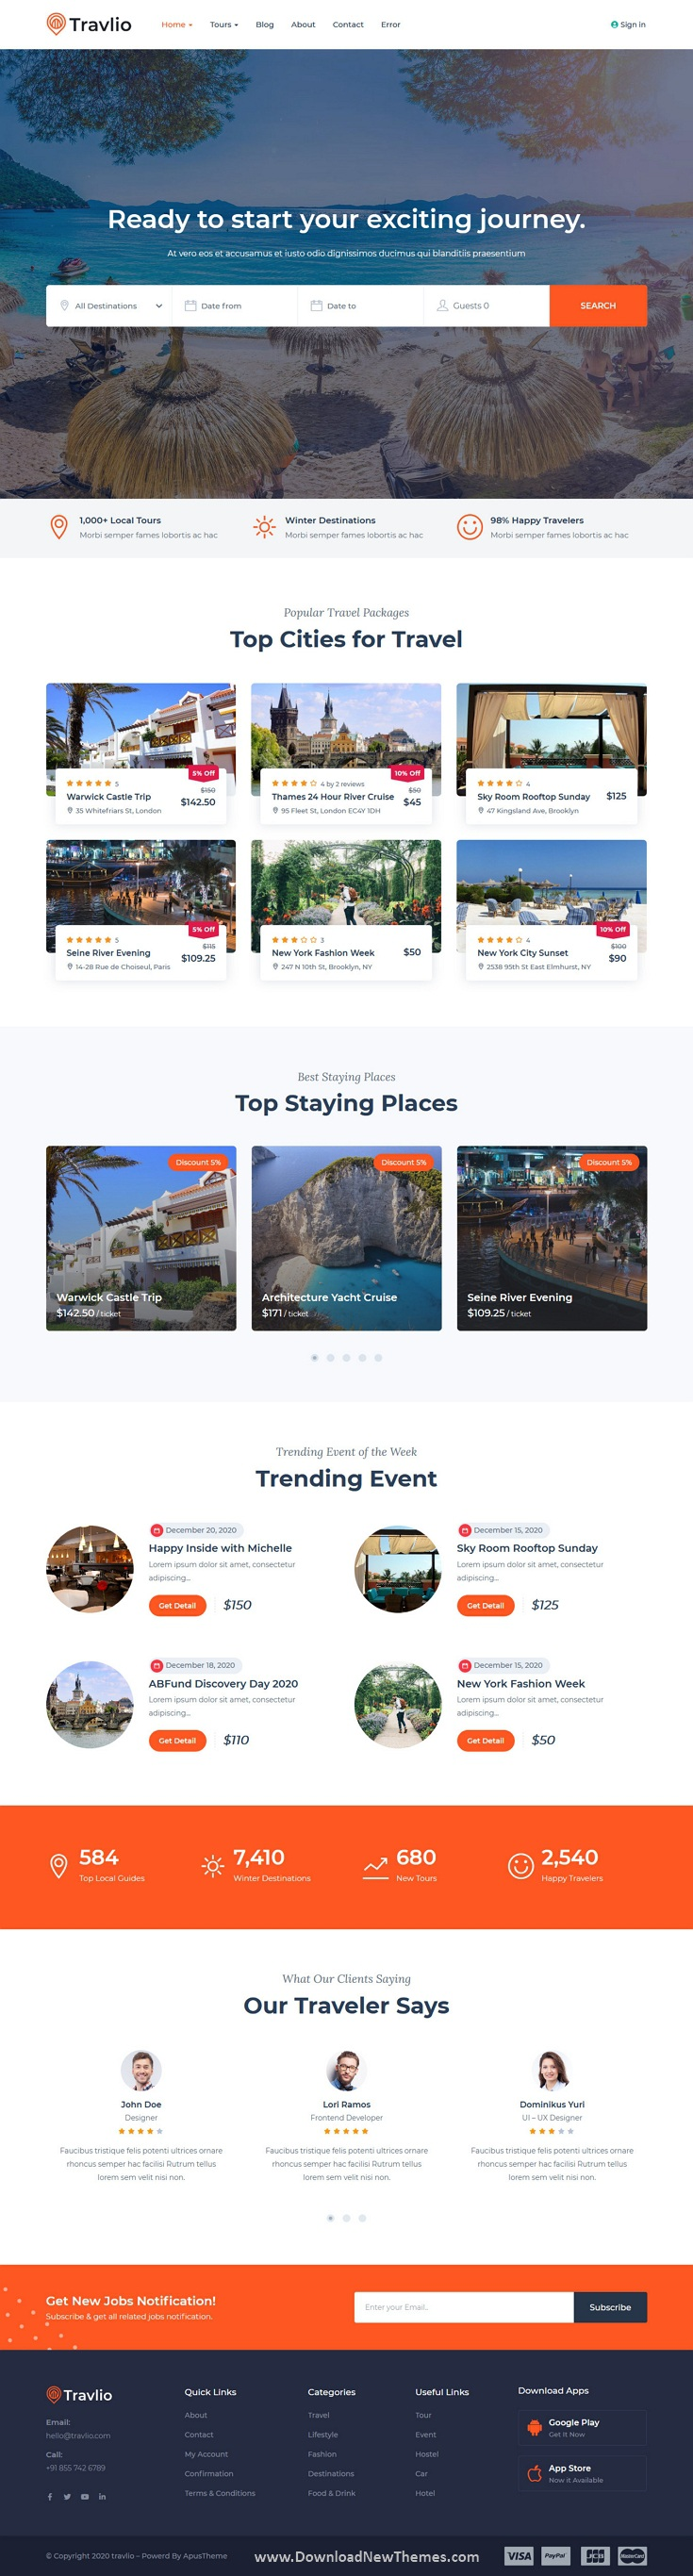 Travlio Travel Booking WordPress Theme